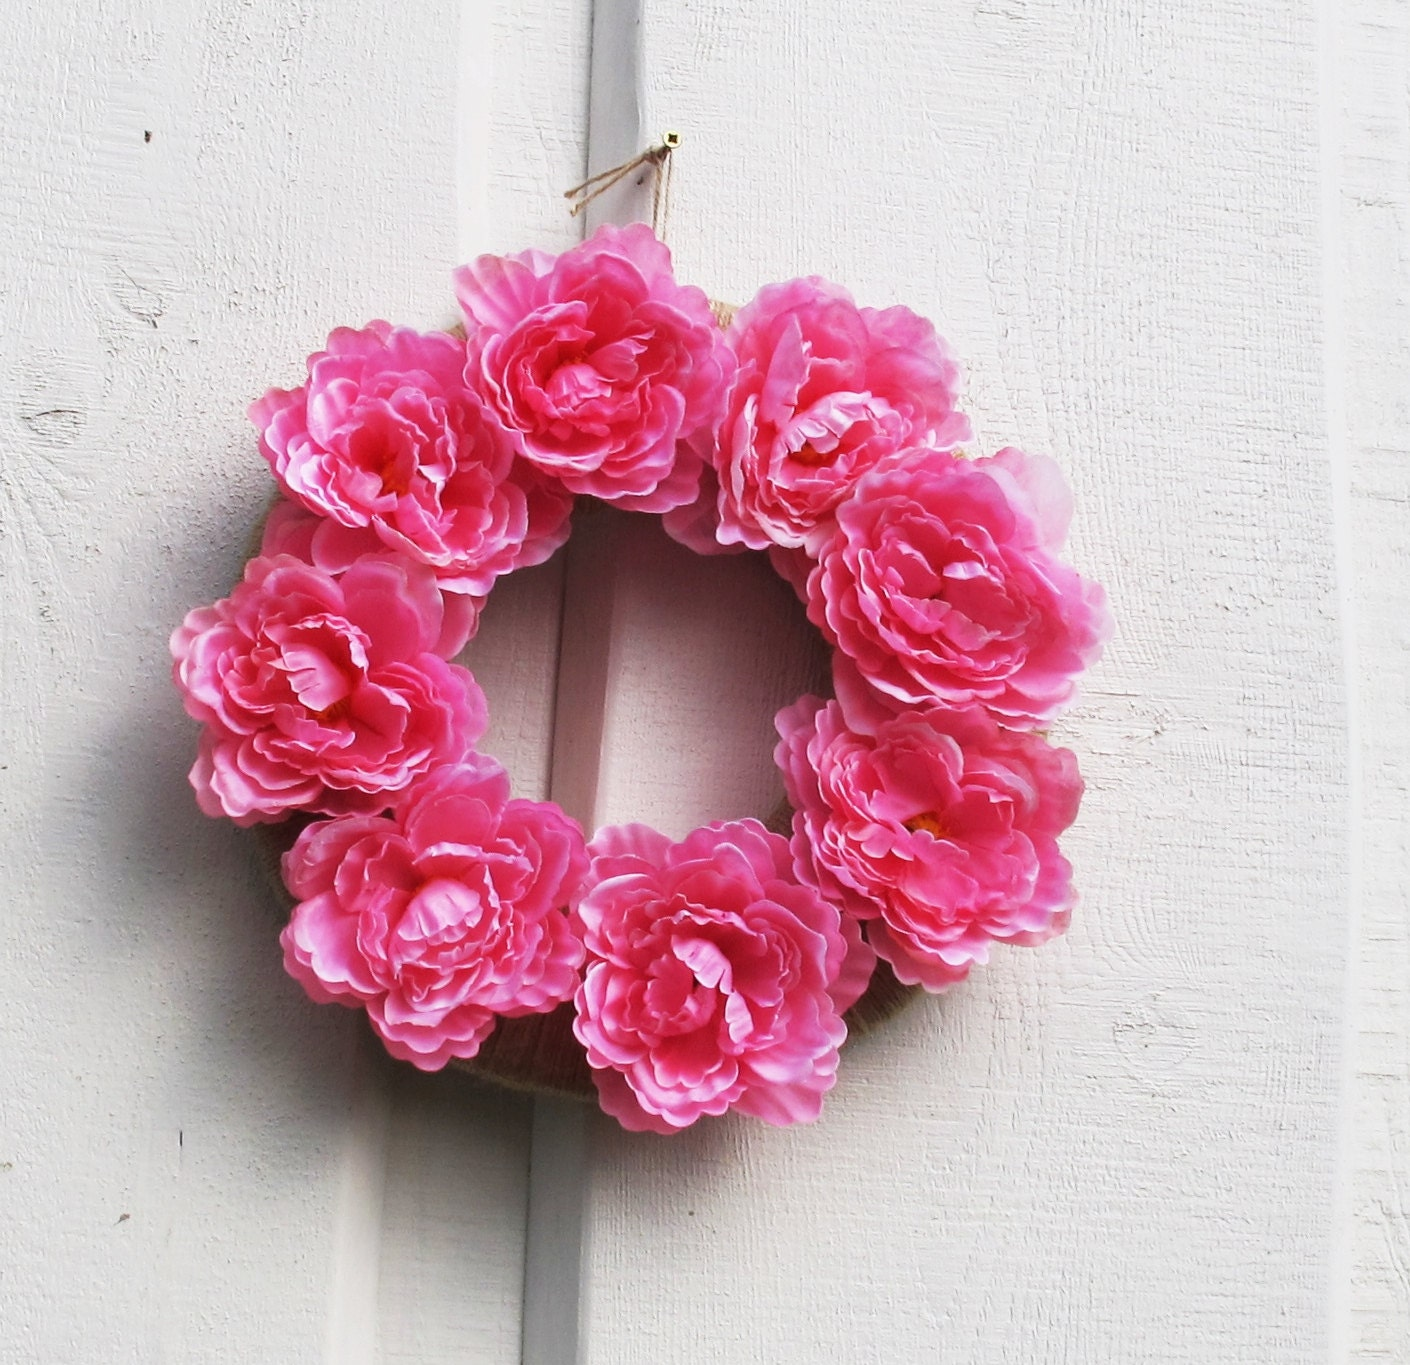 Pink Peonies Flowers Wreath Silk Peony Artificial Flower Wreaths Front Door  Decoration Table Centerpiece Summer Spring